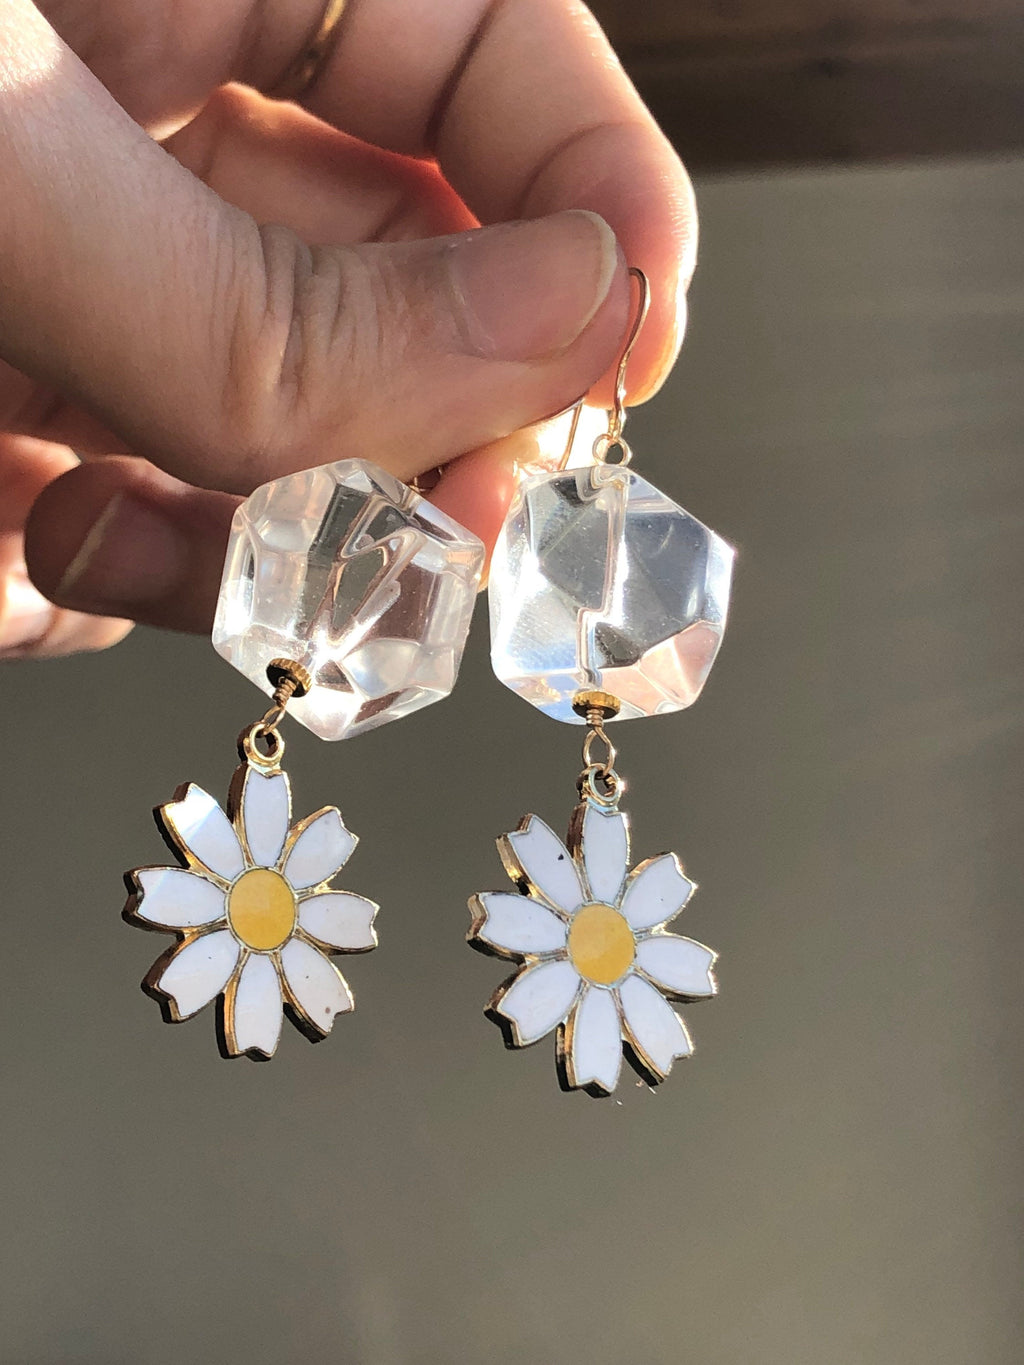 April Birthday Earrings / Daisy April Birth Flower Earrings /  Faceted Clear Quartz April Birthstone / Vintage Brass Enameled Daisy Charms